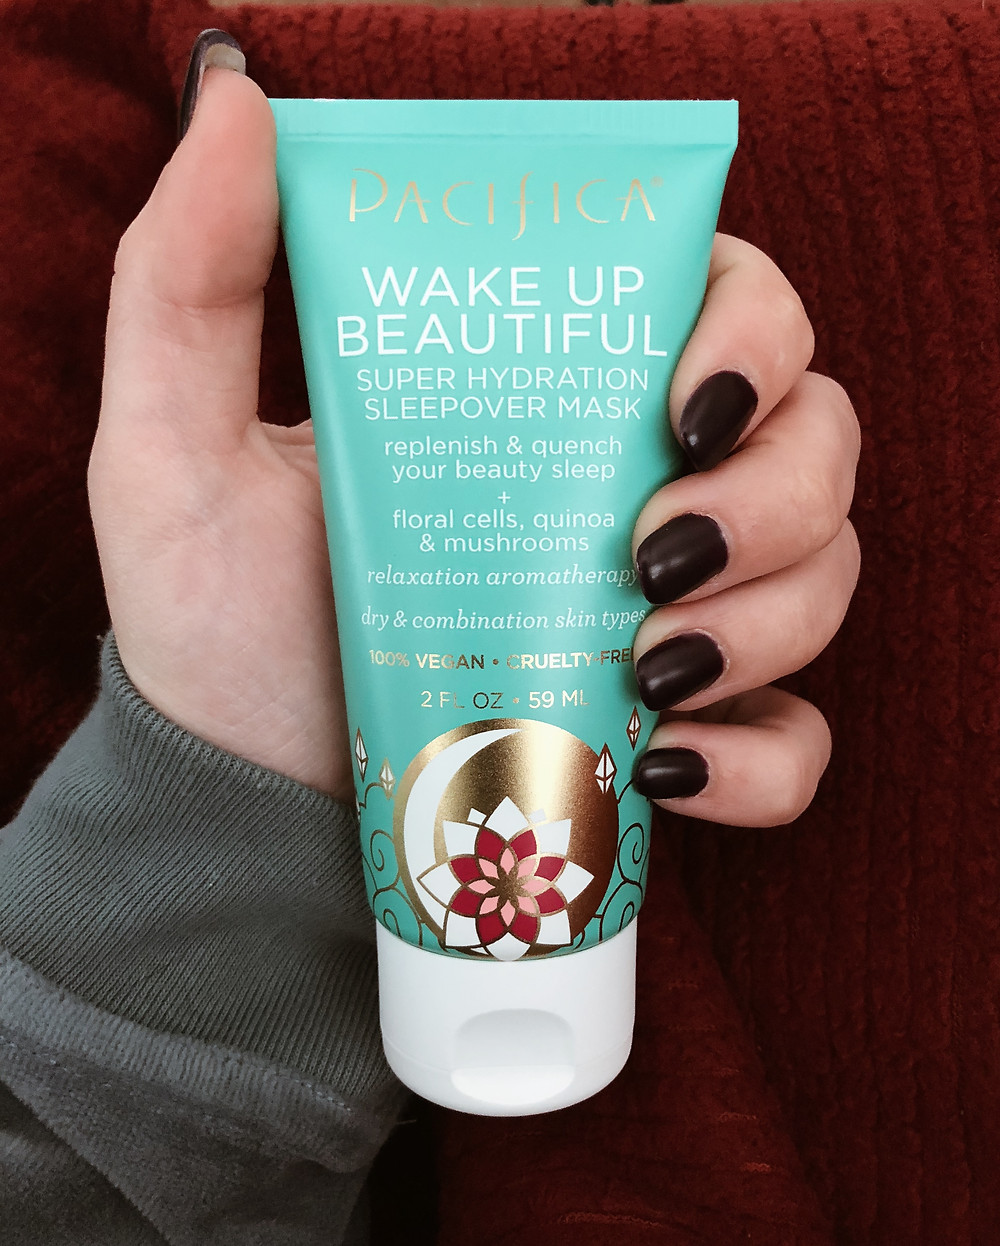 pacifica beauty super hydration sleepover mask